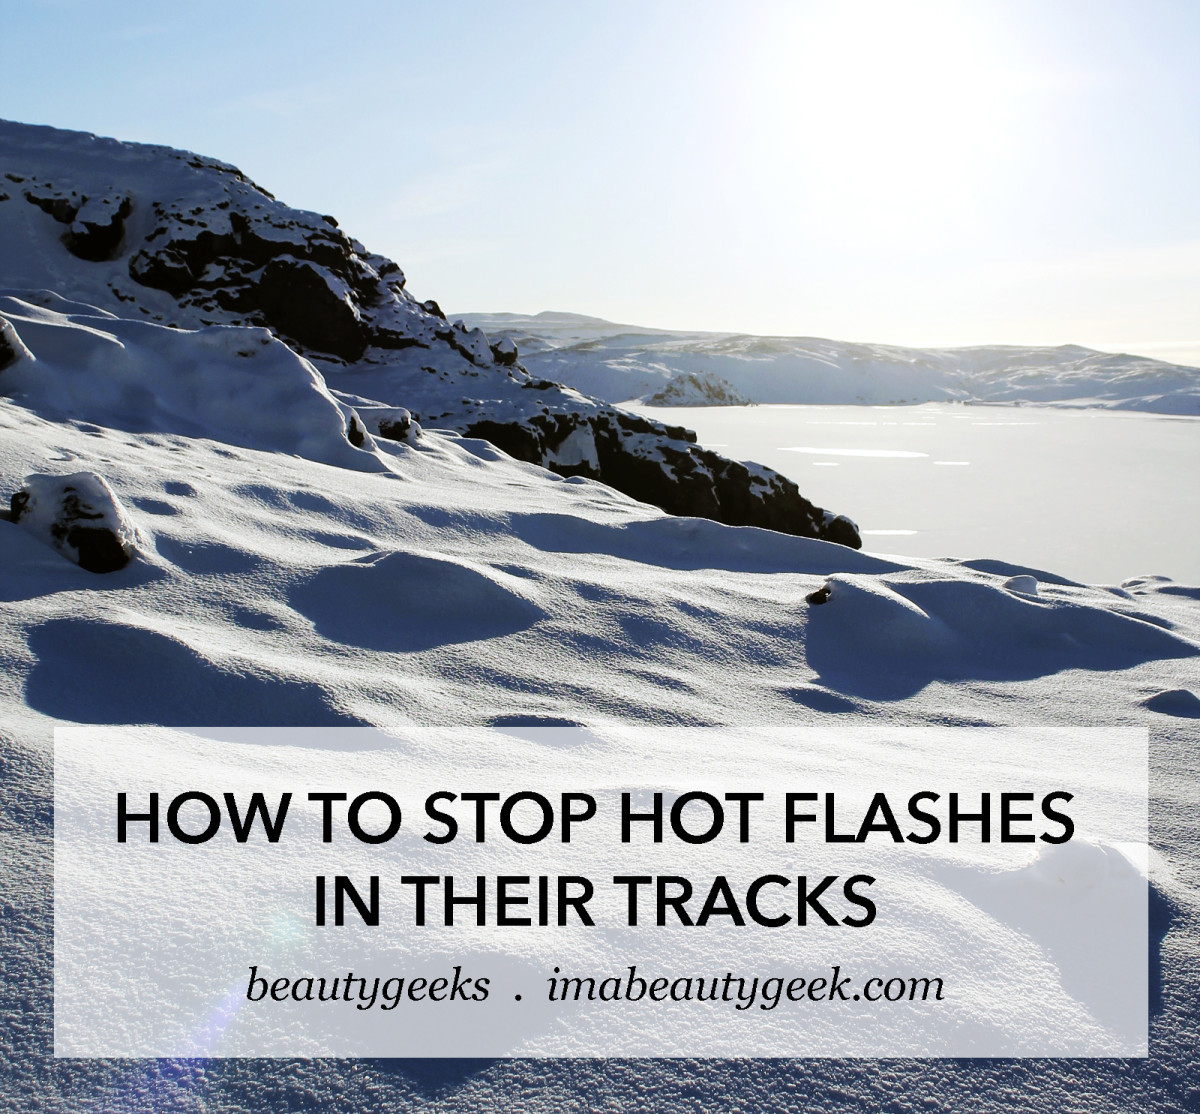 How to stop hot flashes in their tracks_image2